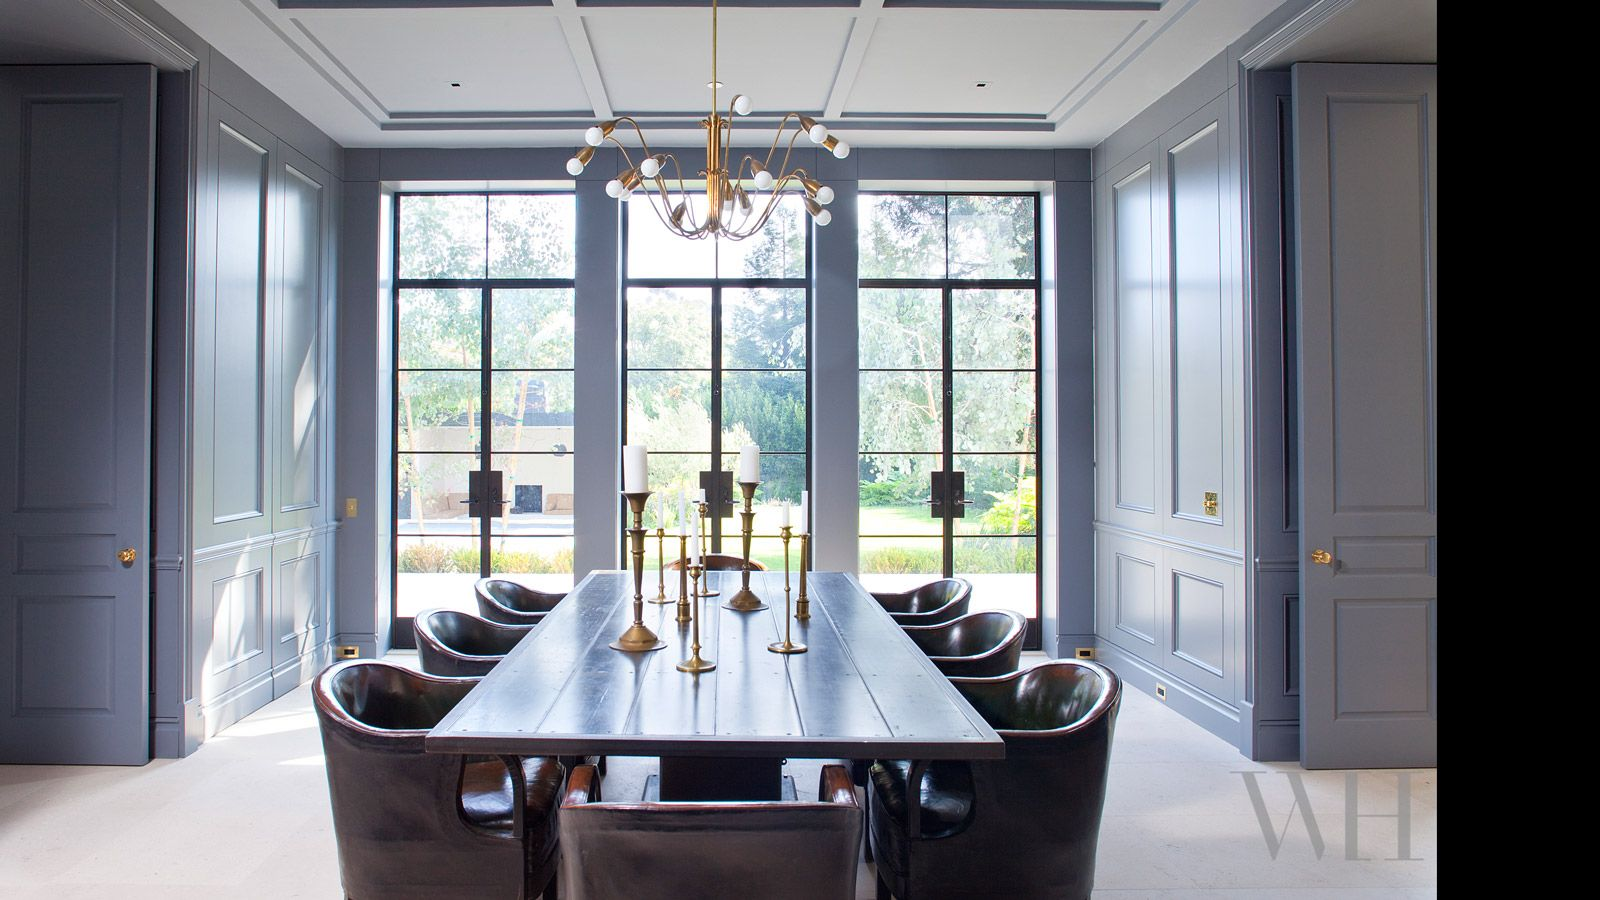 William Heffner timeless modern dining room - classic paneling, contemporary steel